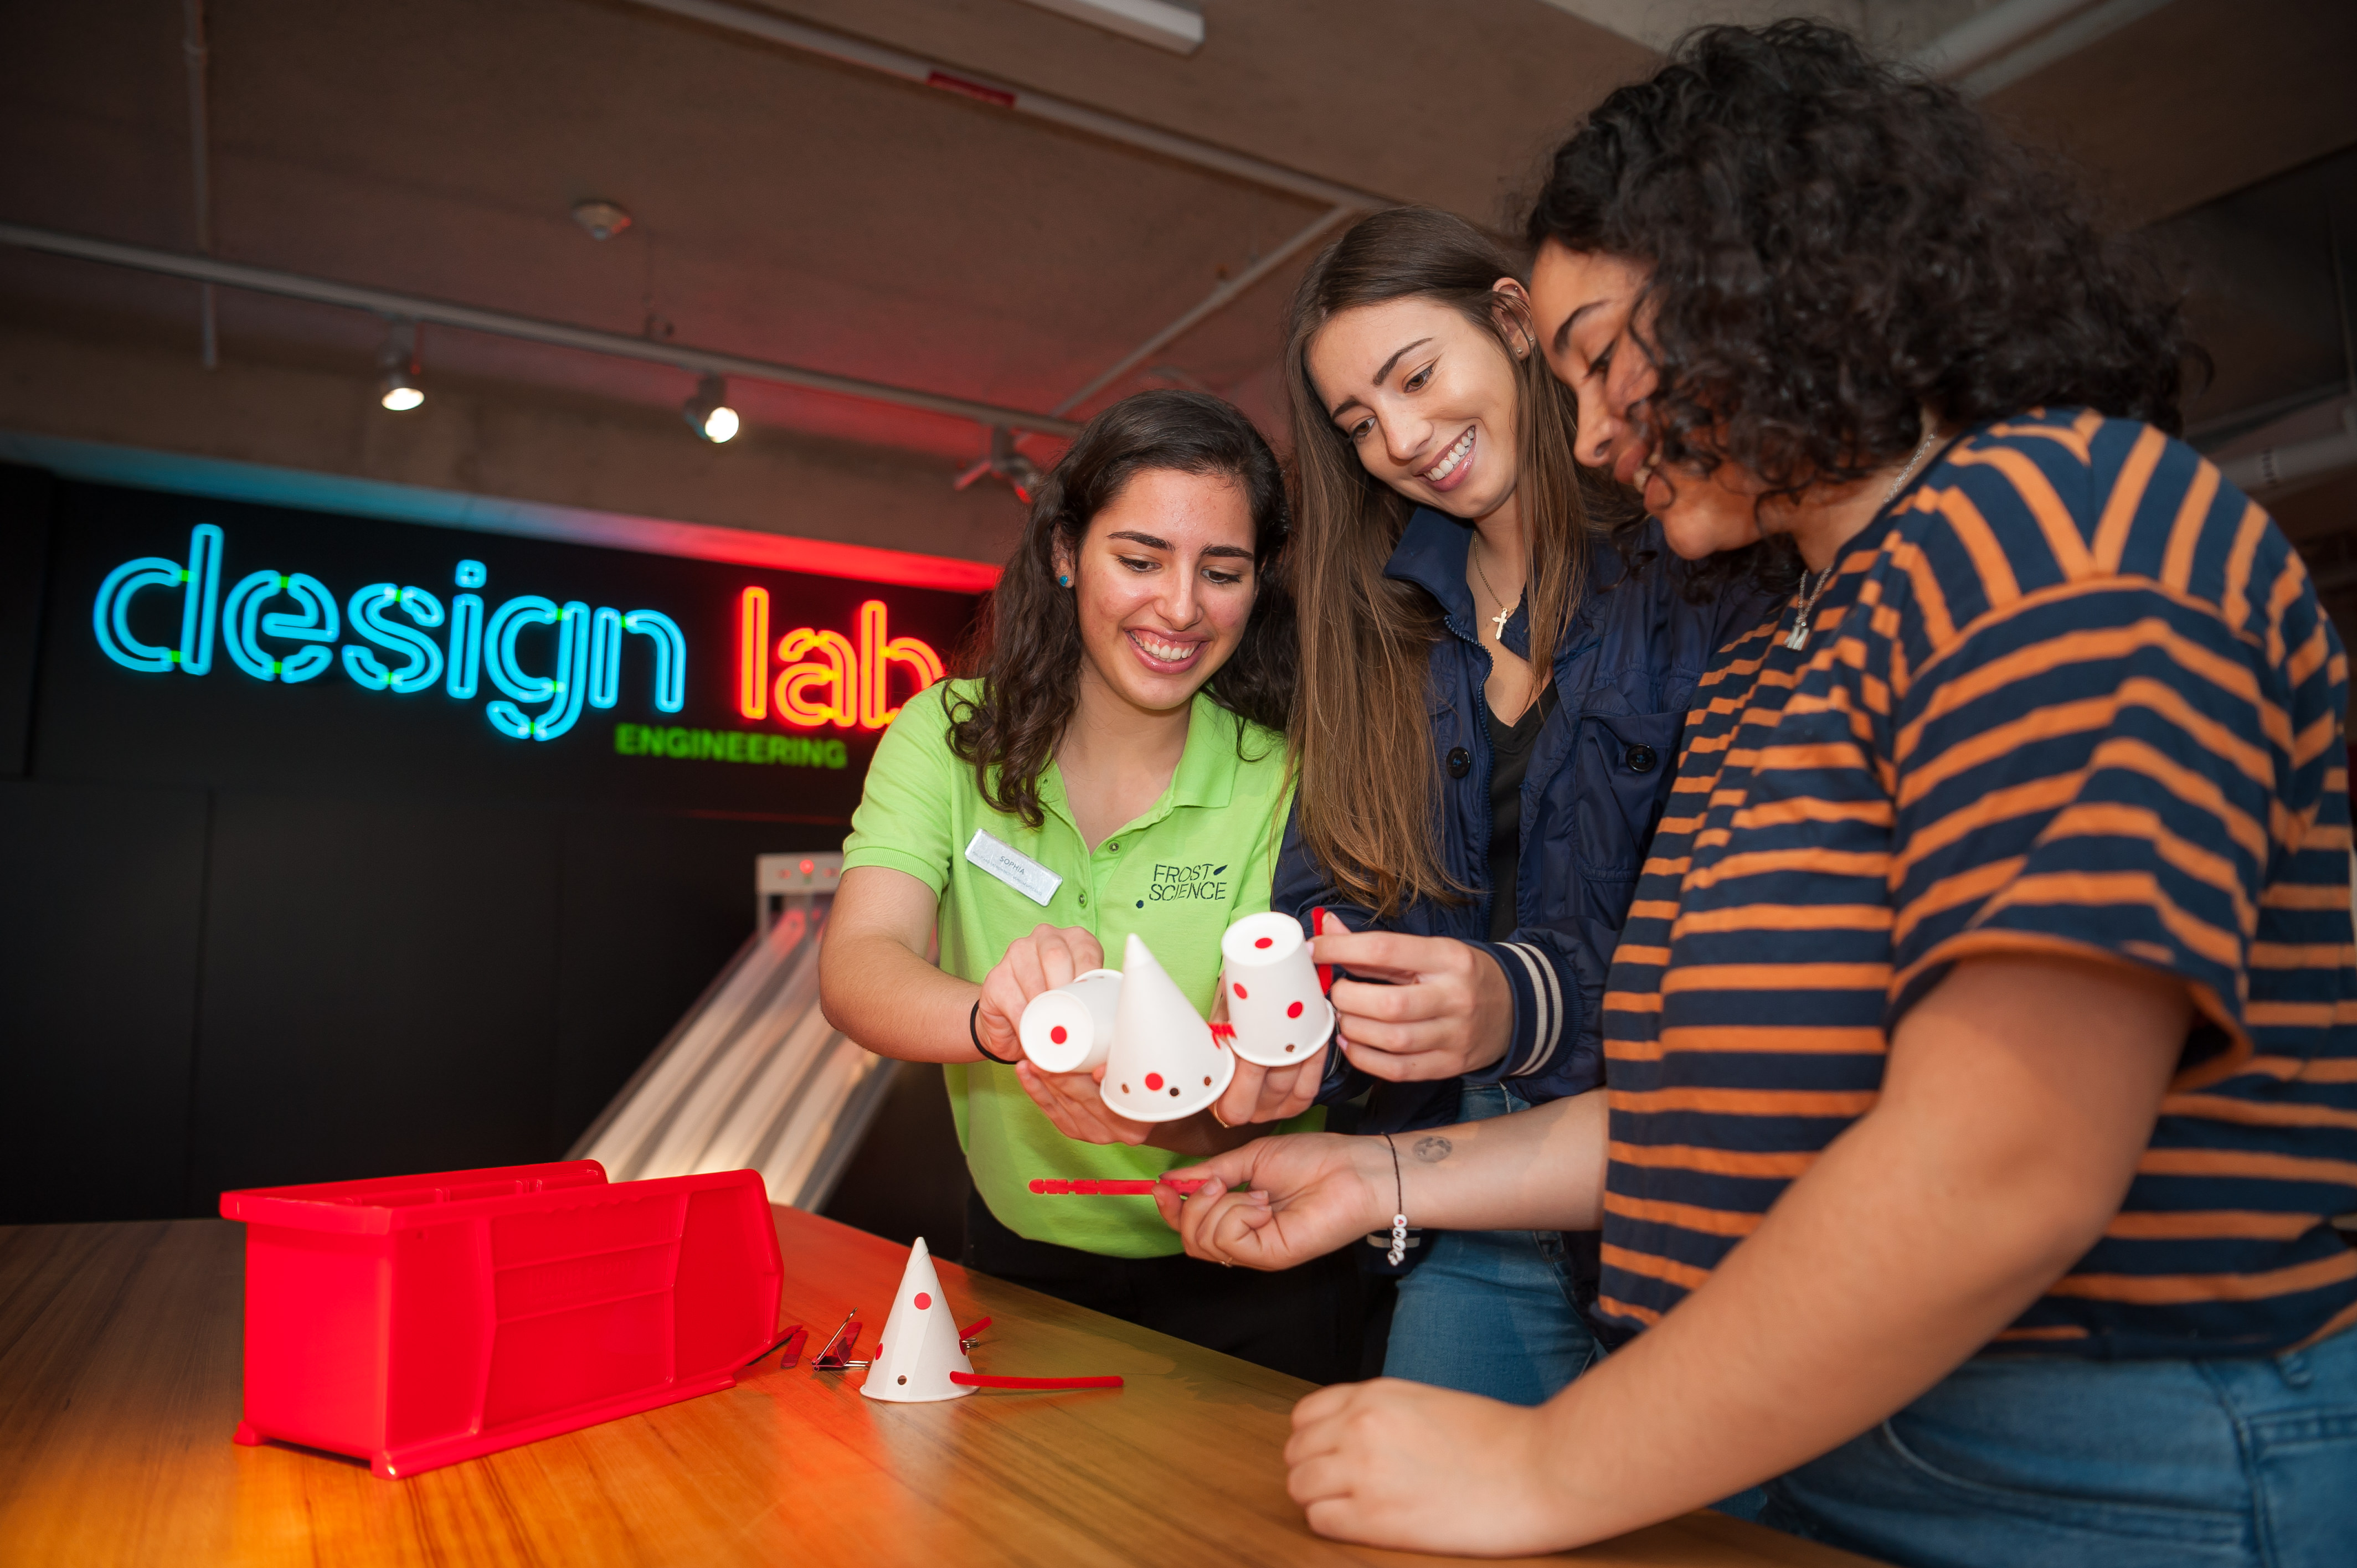 Solve design challenges creatively in our Design Lab Workshop (Photo by Sergi Alexander / Eyeworks Production)